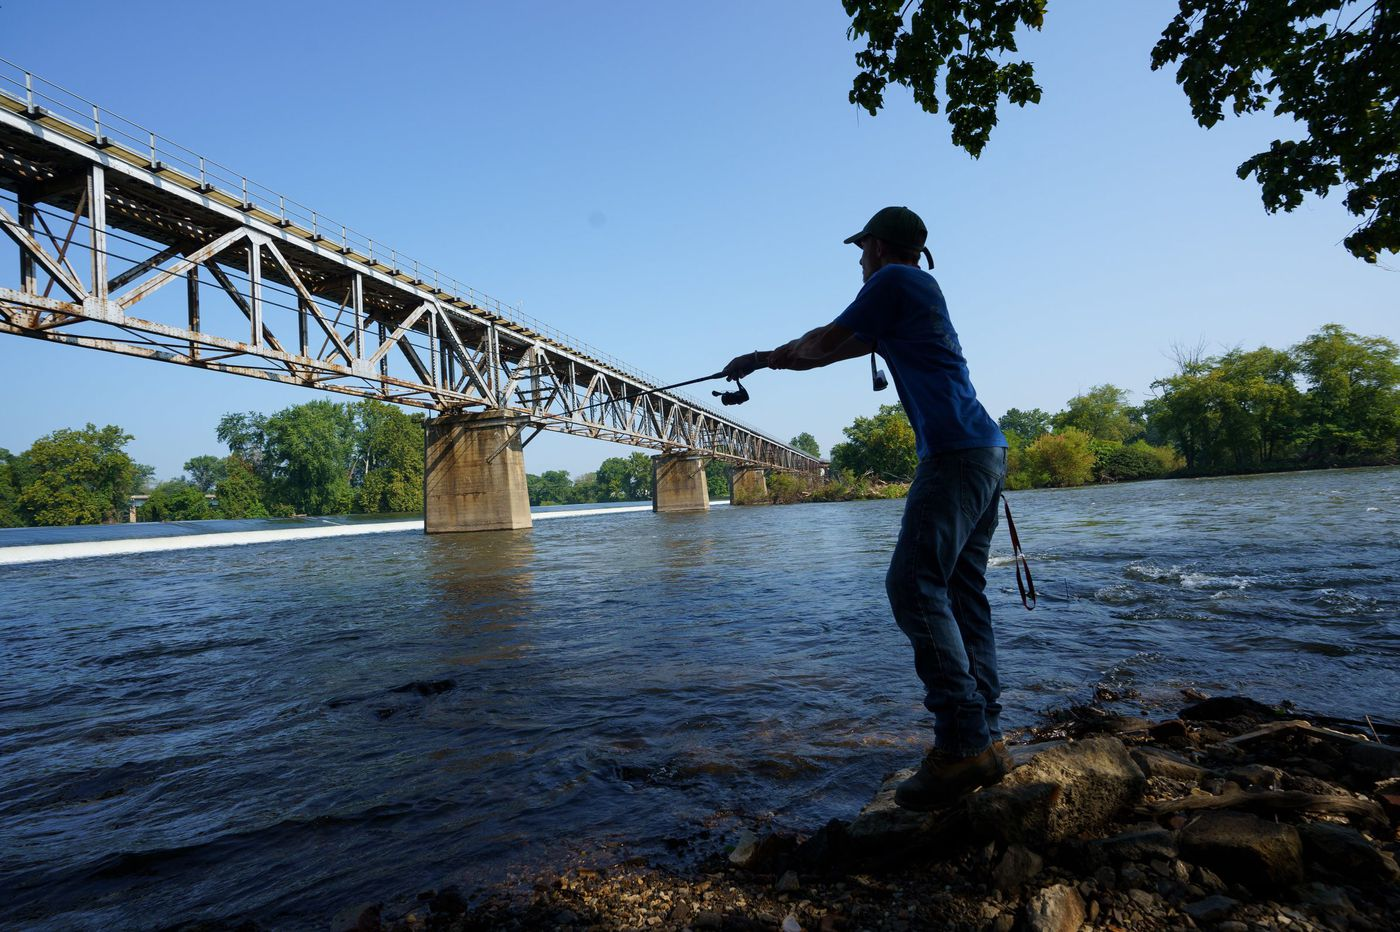 What fish live in the Schuylkill and which are safe to eat?